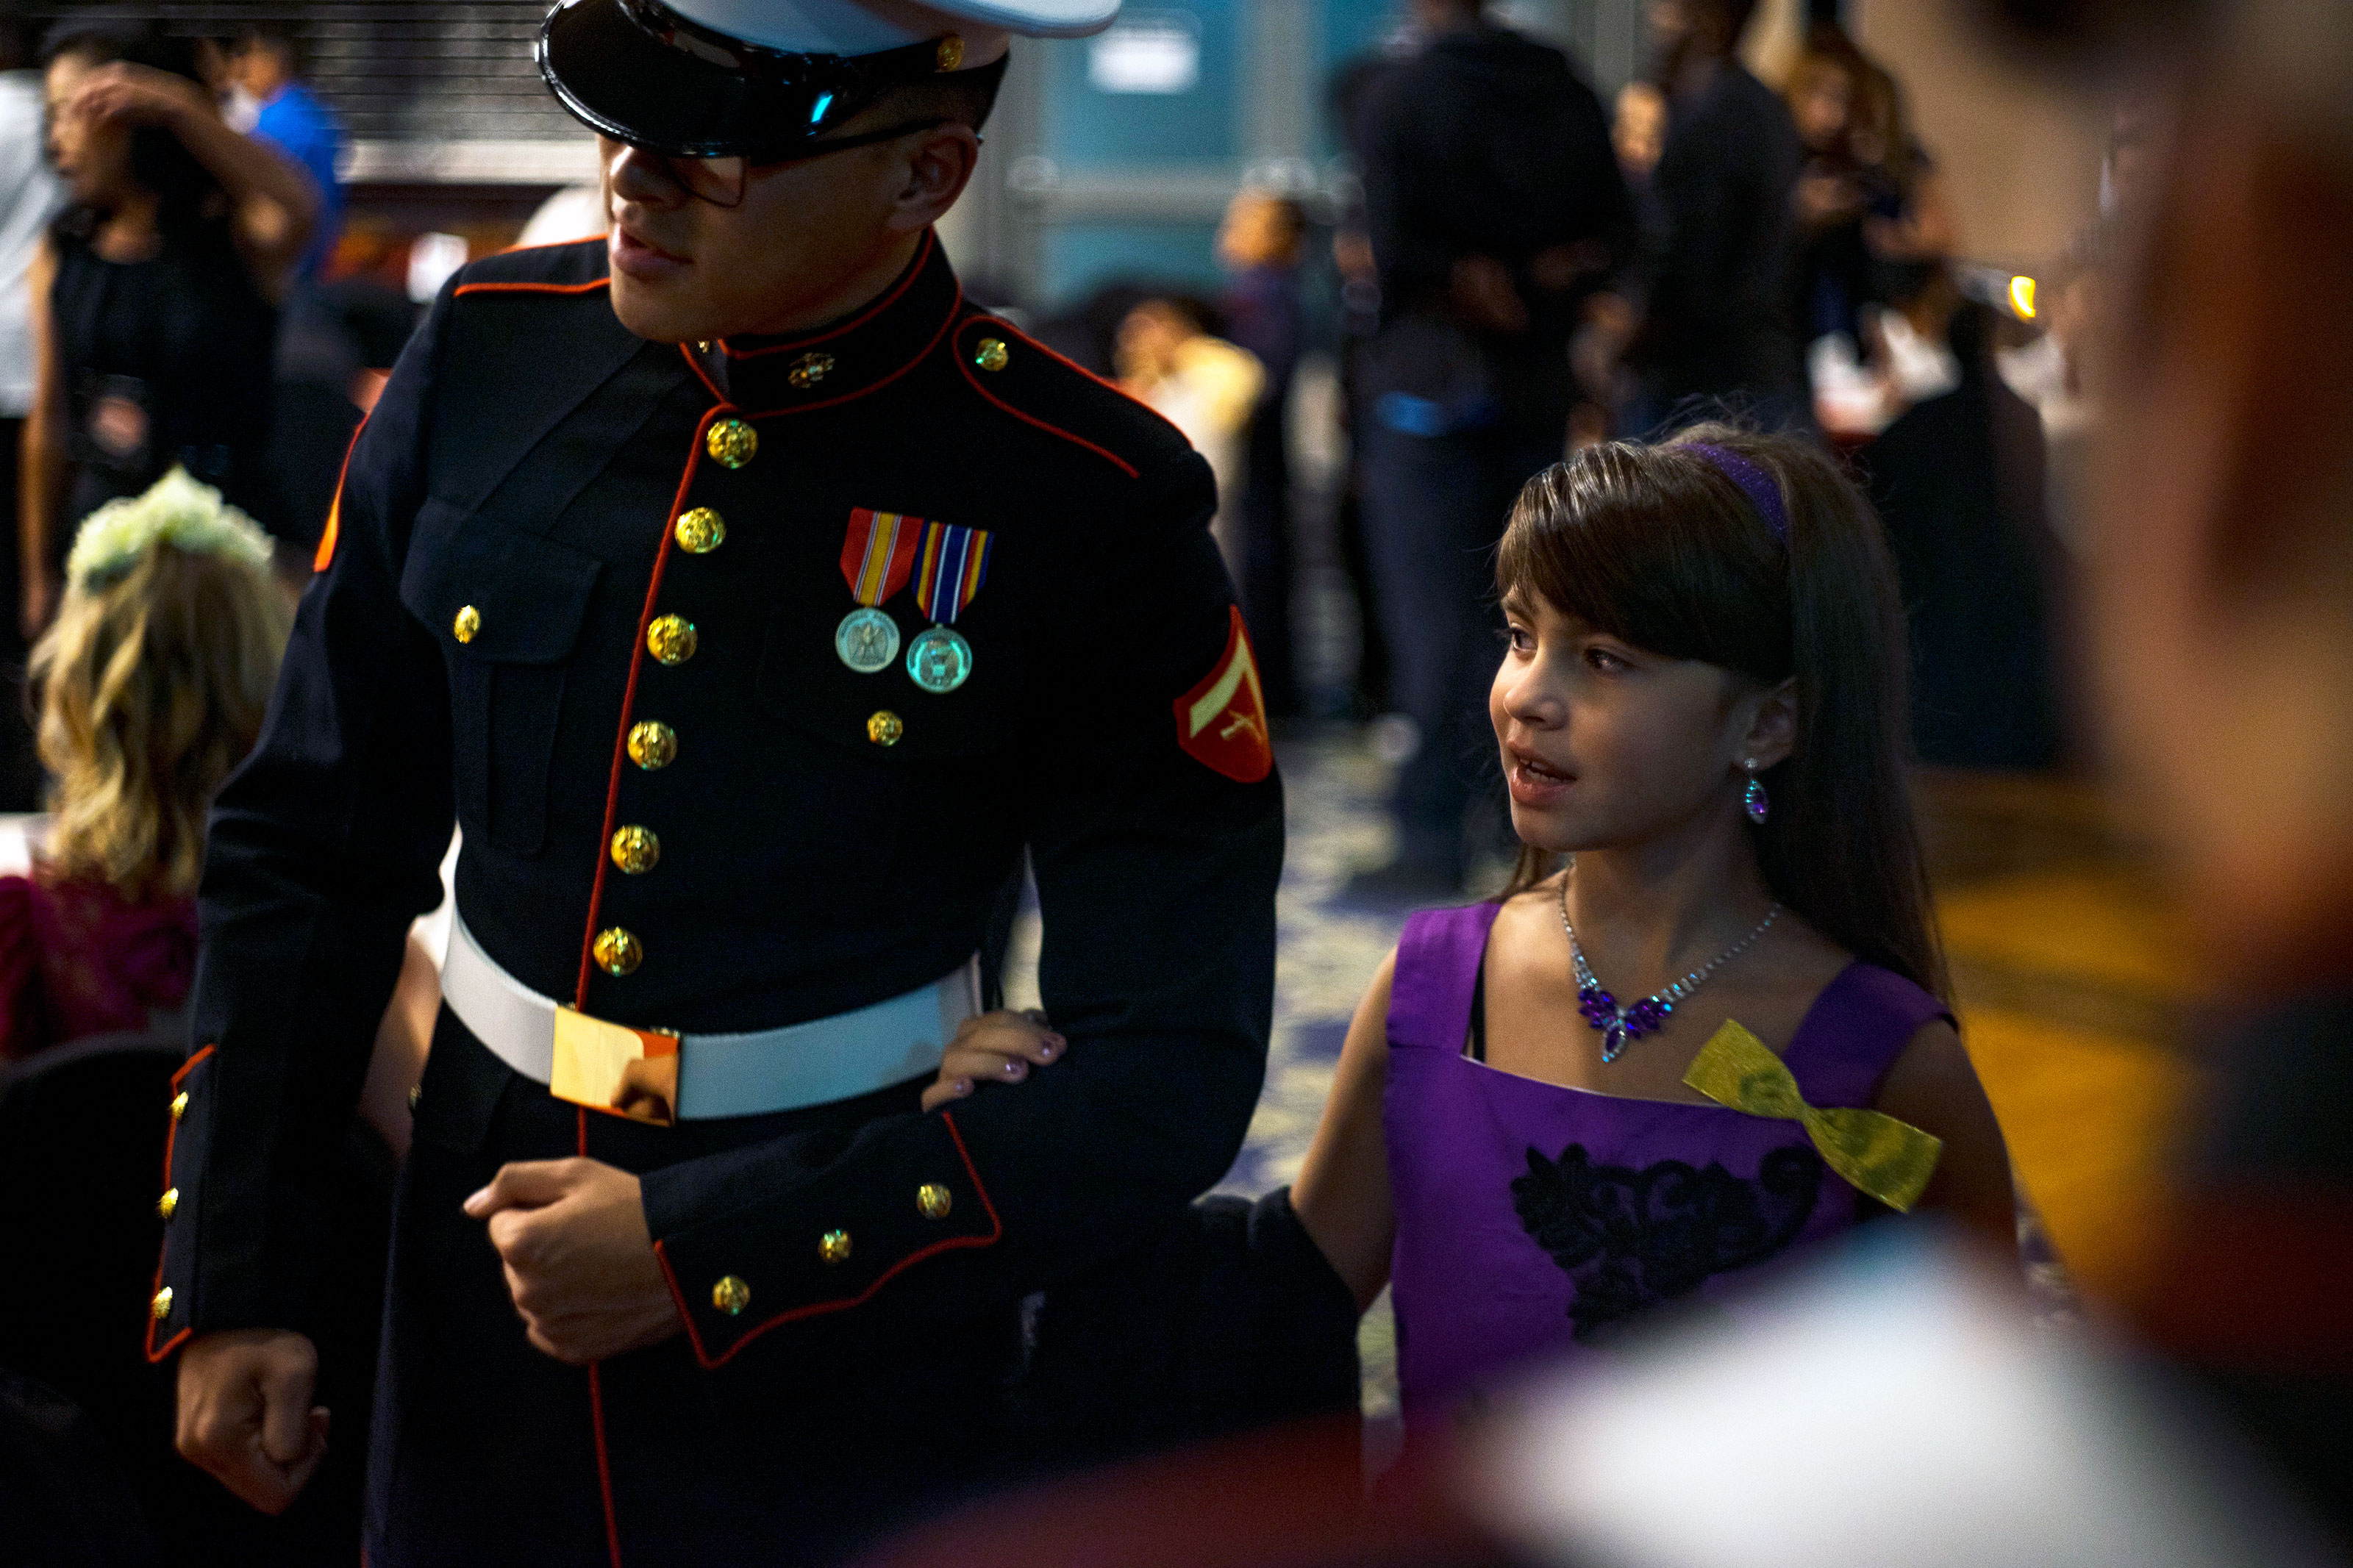 A U.S. Marine escorts a child to her seat during the Seventh Annual Mini Marine Corps and Navy Ball at Marine Corps Air Station Iwakuni, Japan, Oct. 21, 2017.  (U.S. Marine Corps/Donato Maffin)